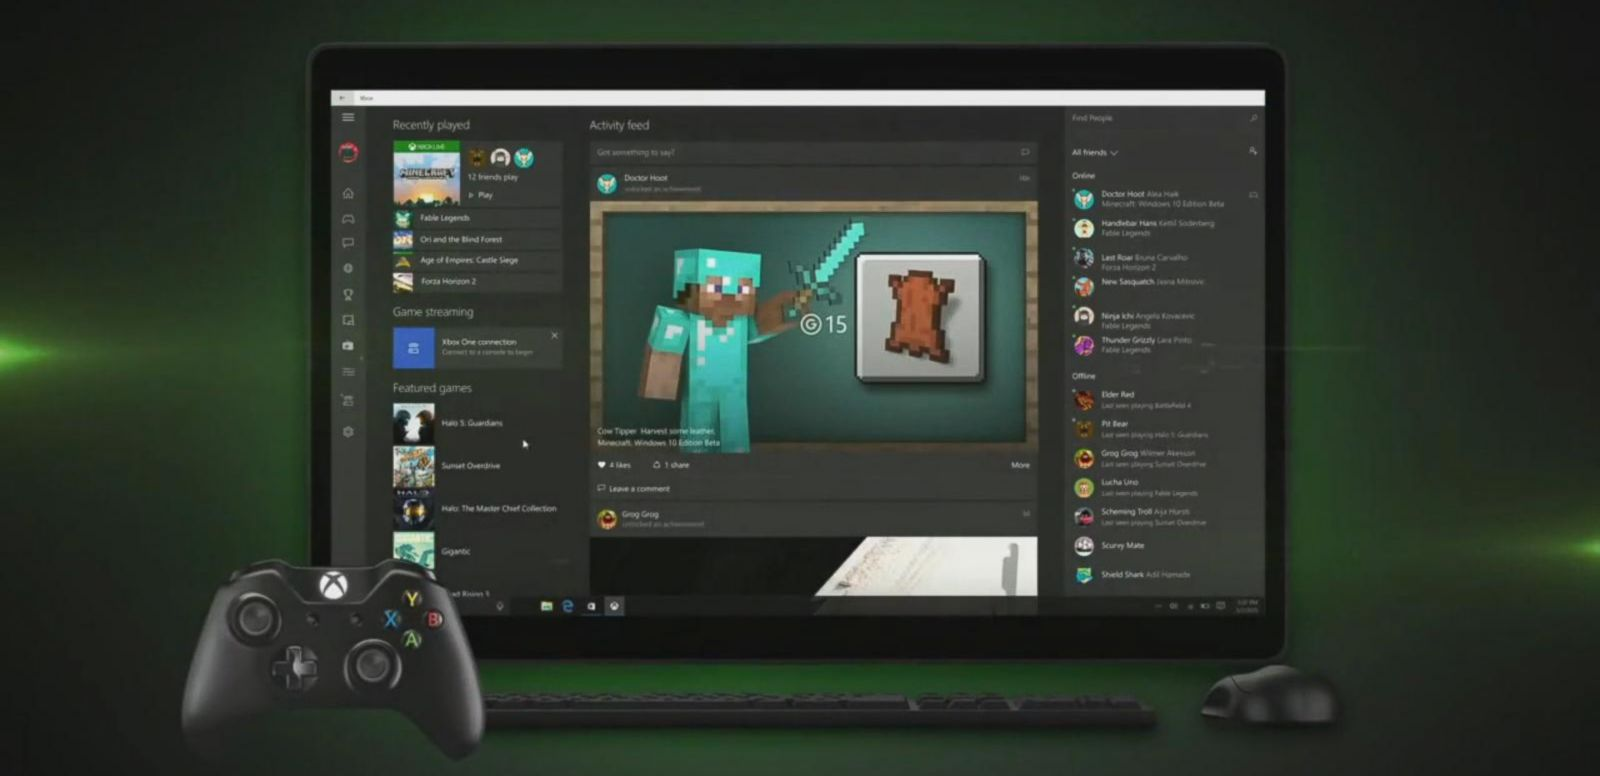 Xbox One gets Windows 10 Features